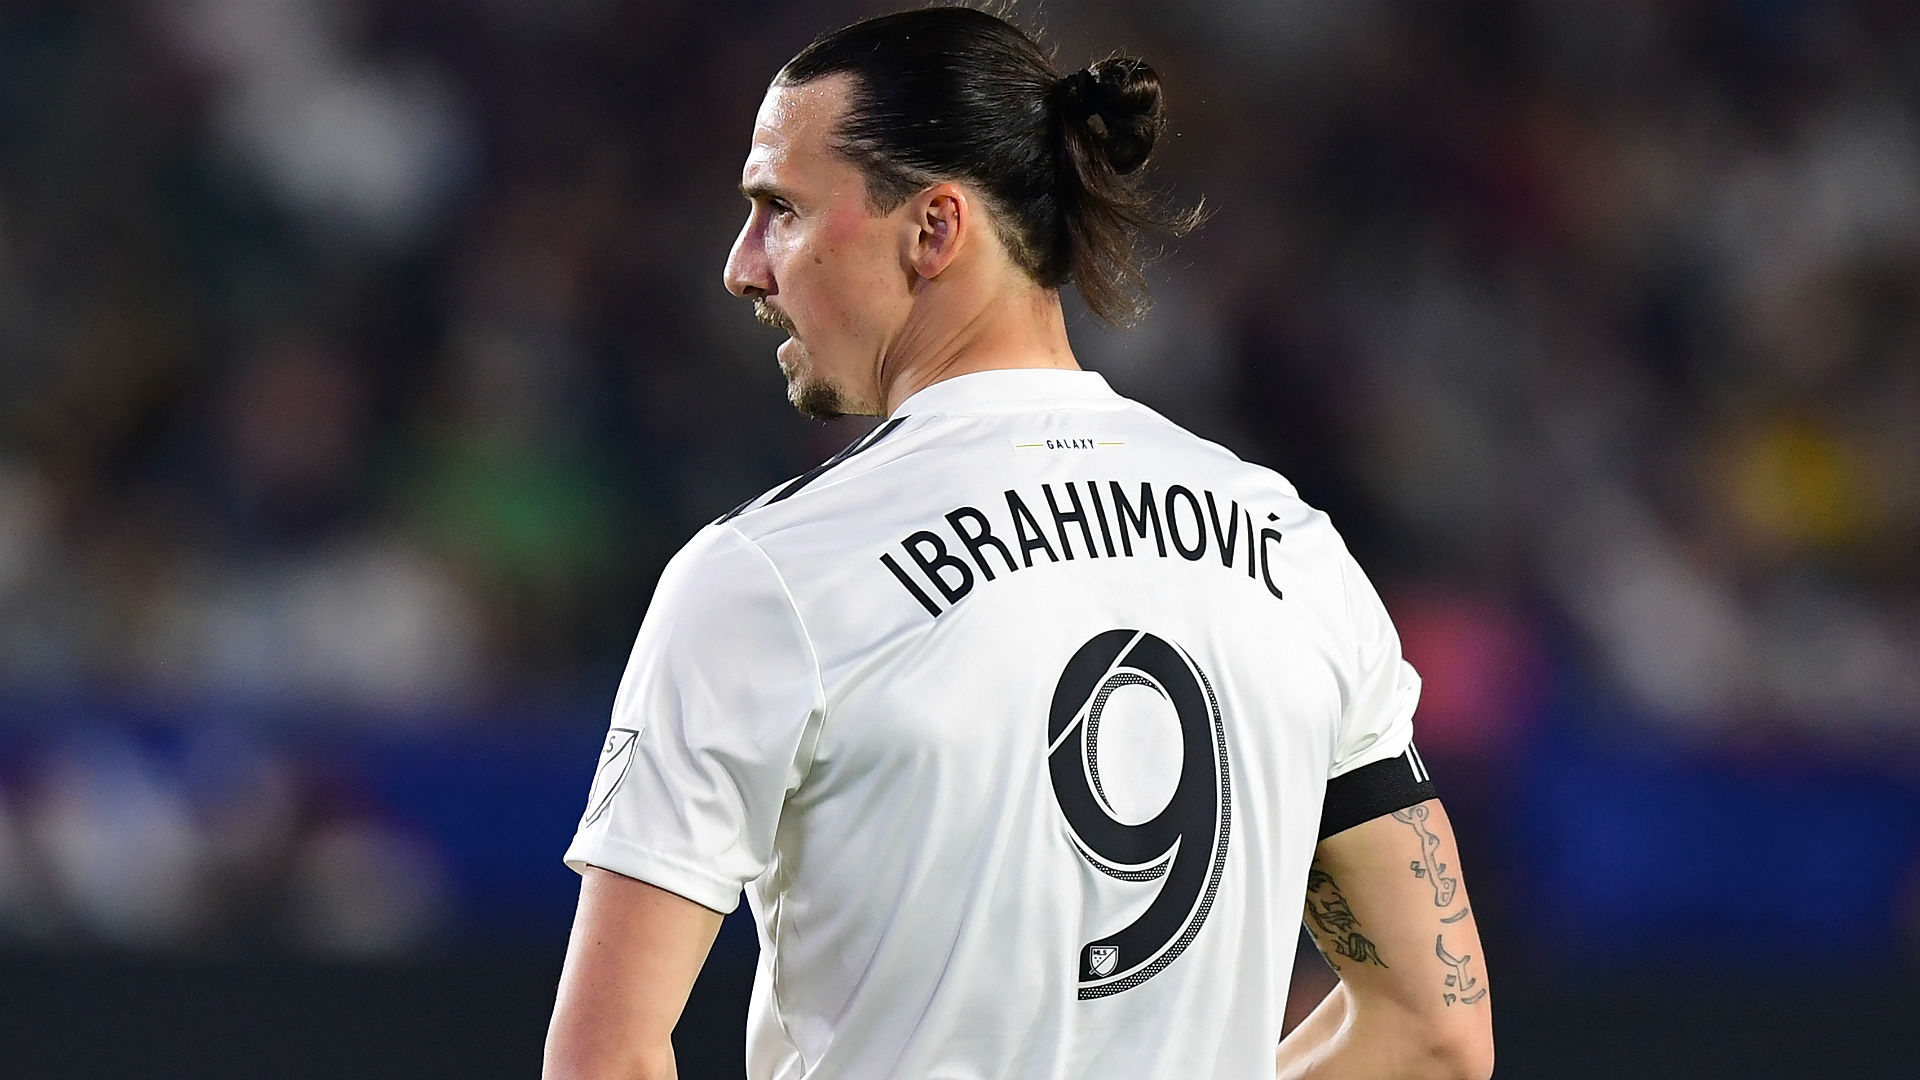 Ibrahimovic: I'm happy for Toronto, they'll be remembered as my 500th victim